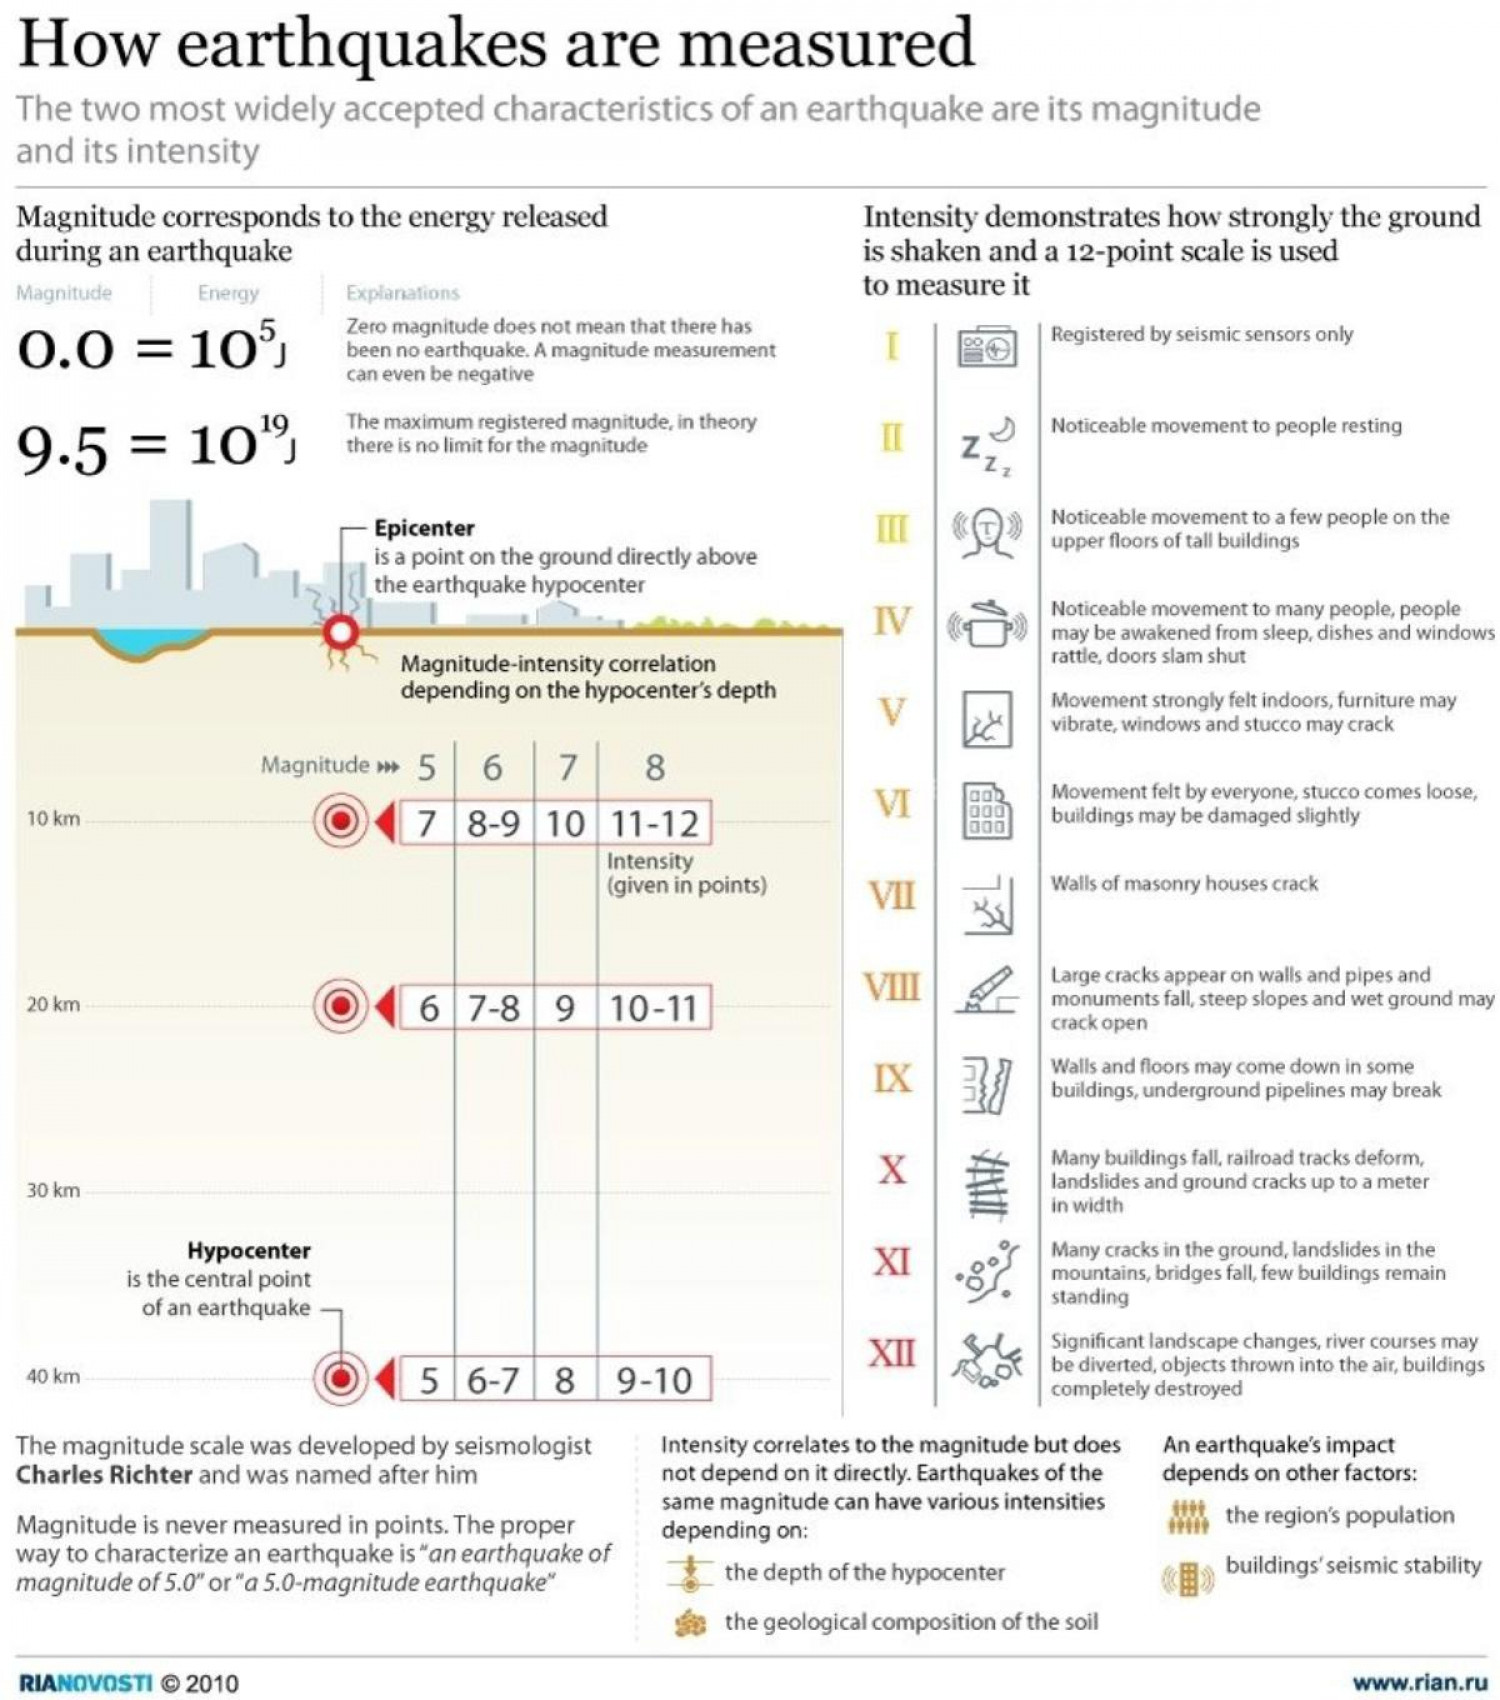 How Earthquakes are Measured Infographic